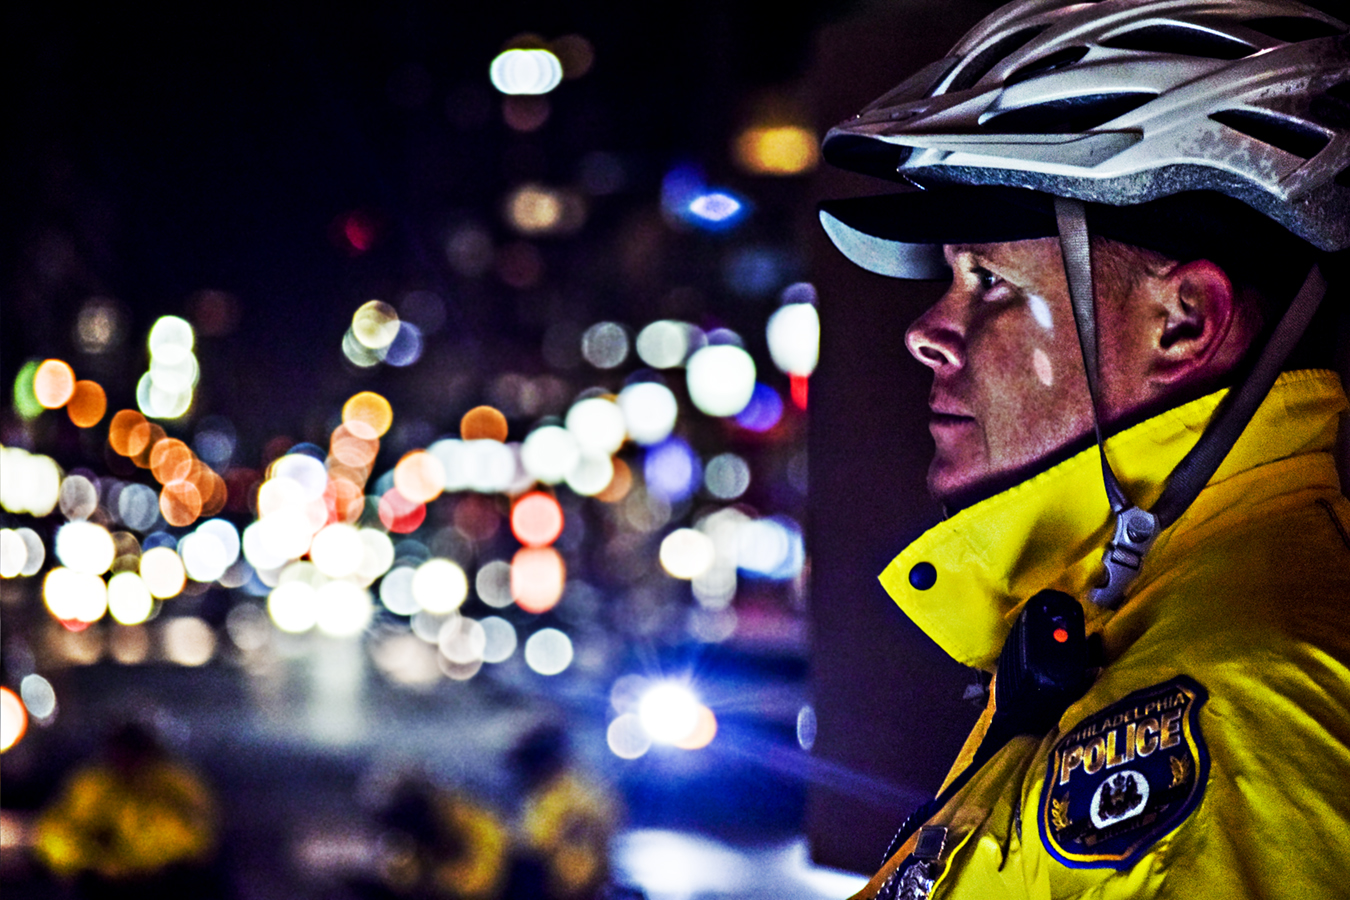 Victoria_Meng_Project3_Policeman_Philly_PD_Bokeh_Portrait_City_Hall_Night_Light_Police